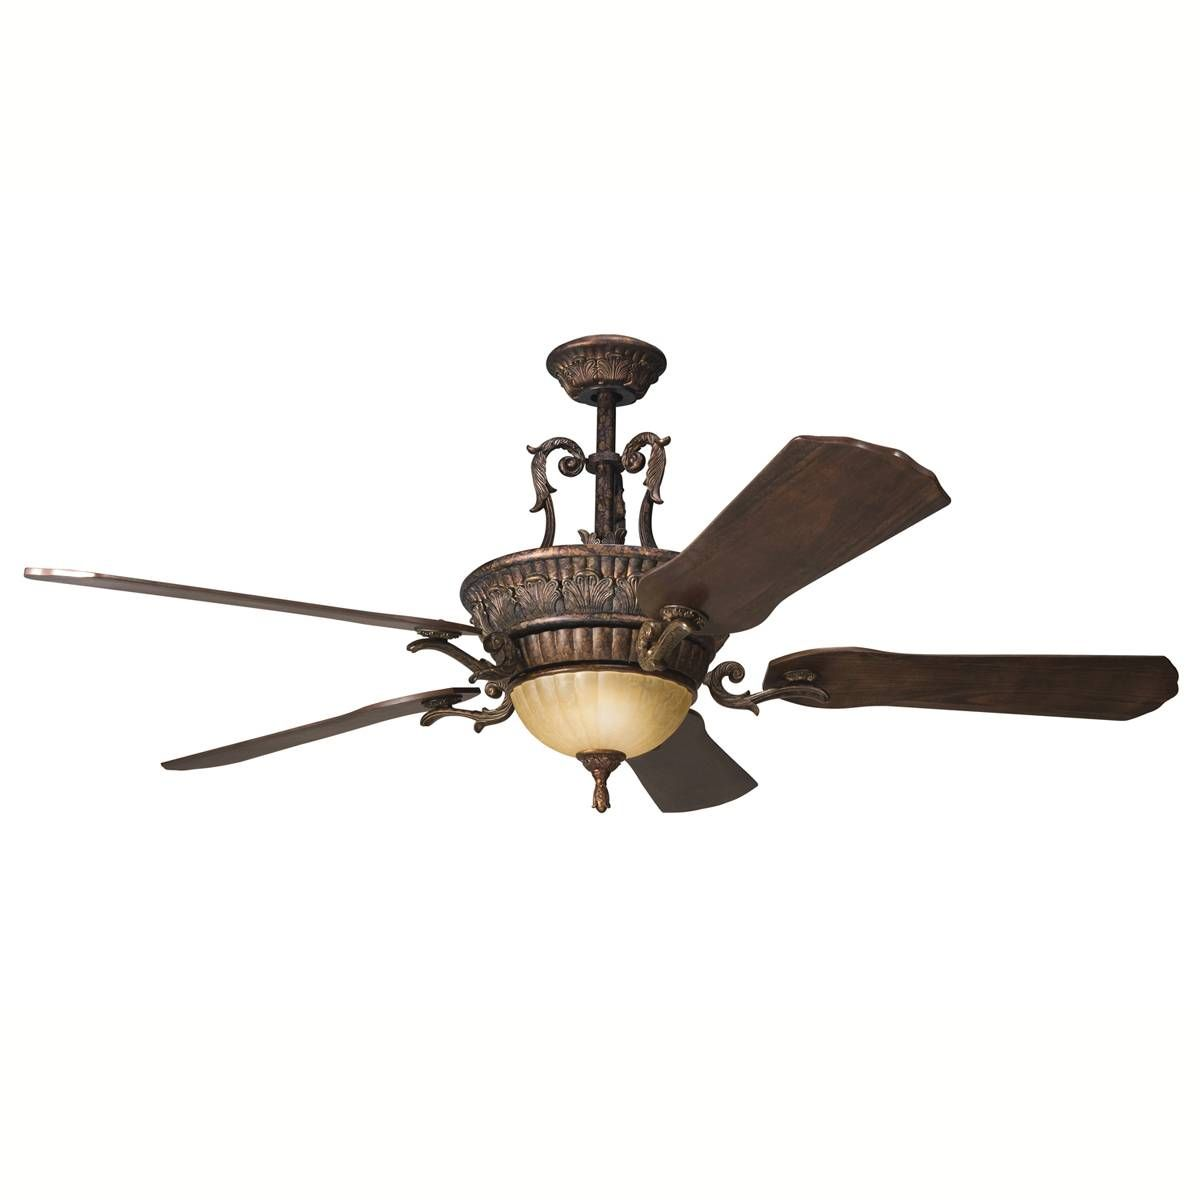 Kichler 60 Wind Speed 3 58 Mph 314 64 Lfm Ceiling Fan With Light